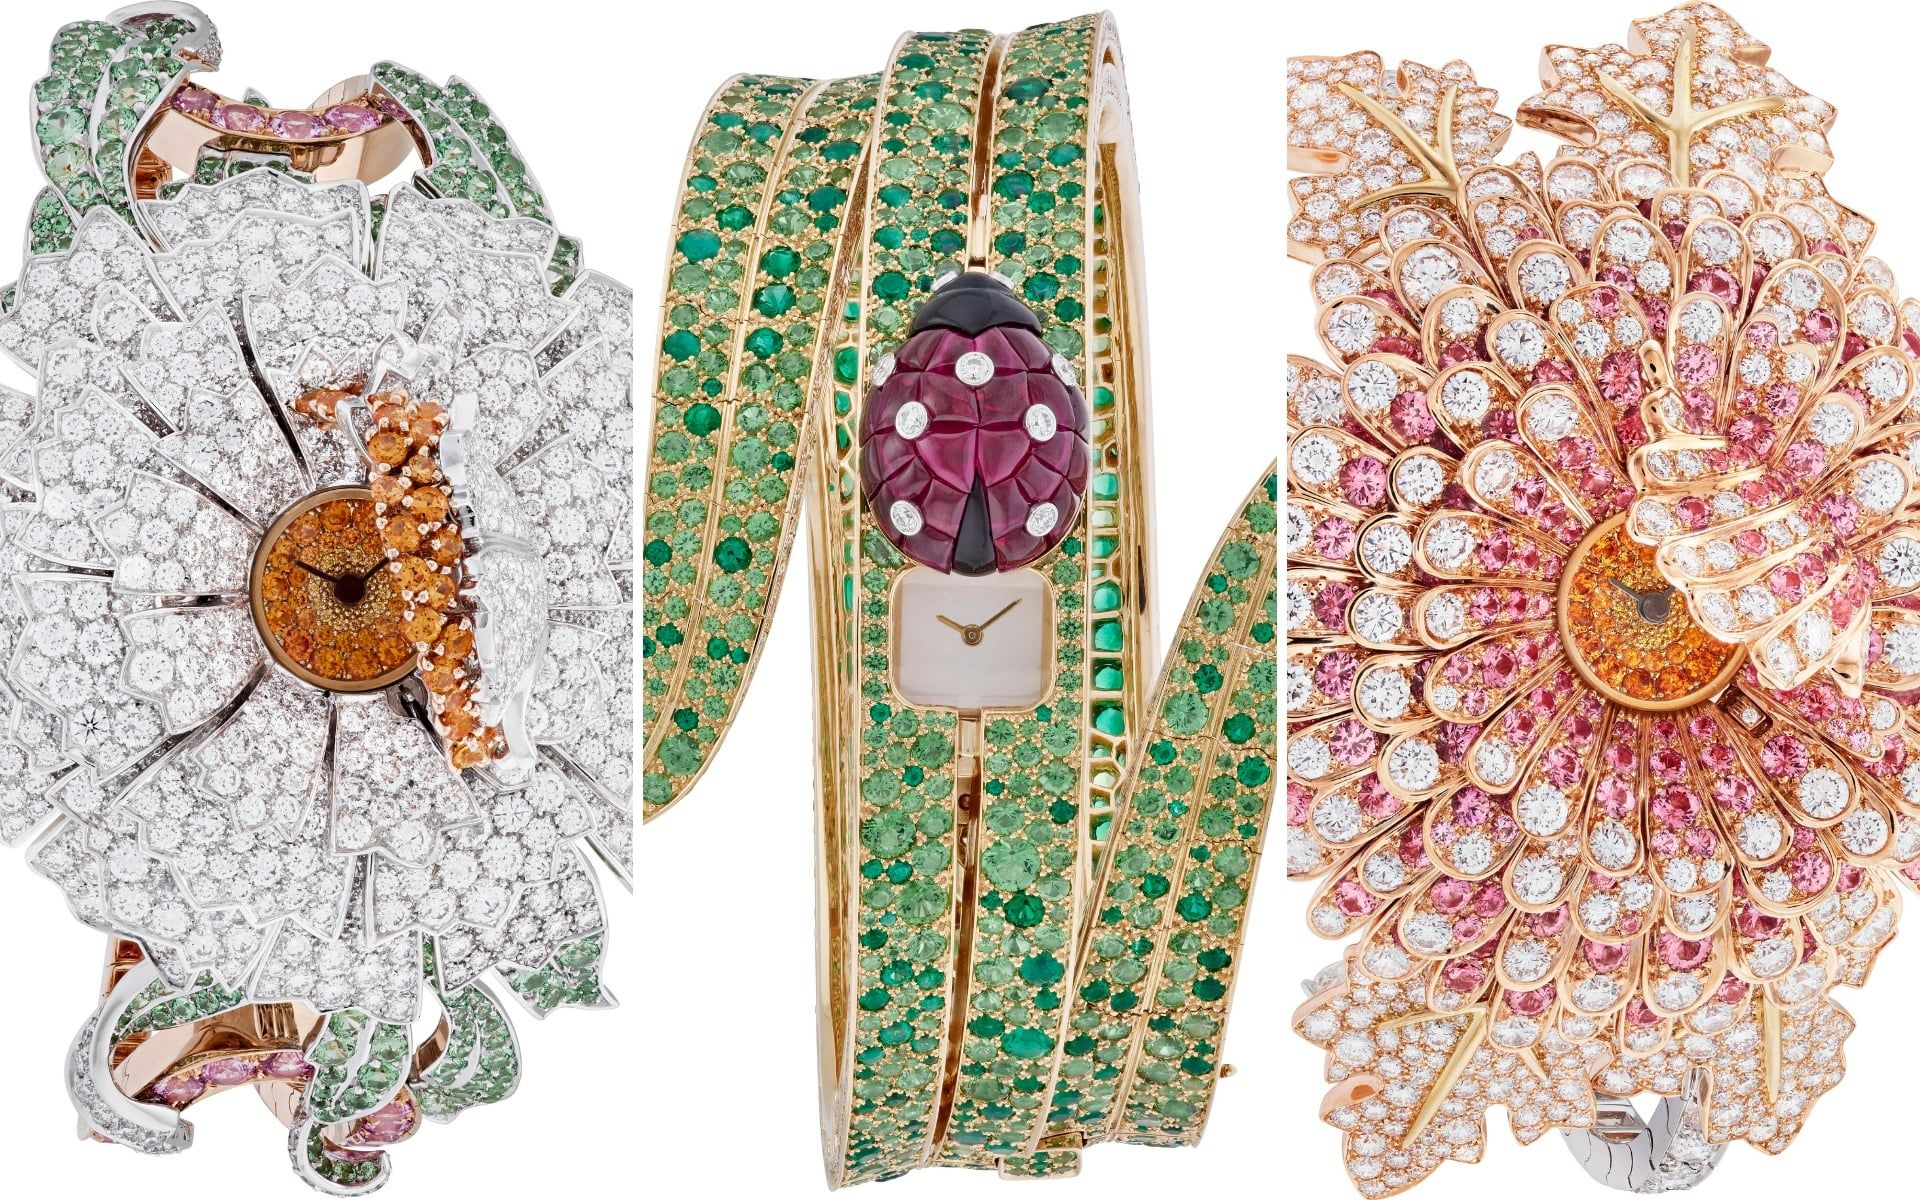 Photos: Van Cleef & Arpels